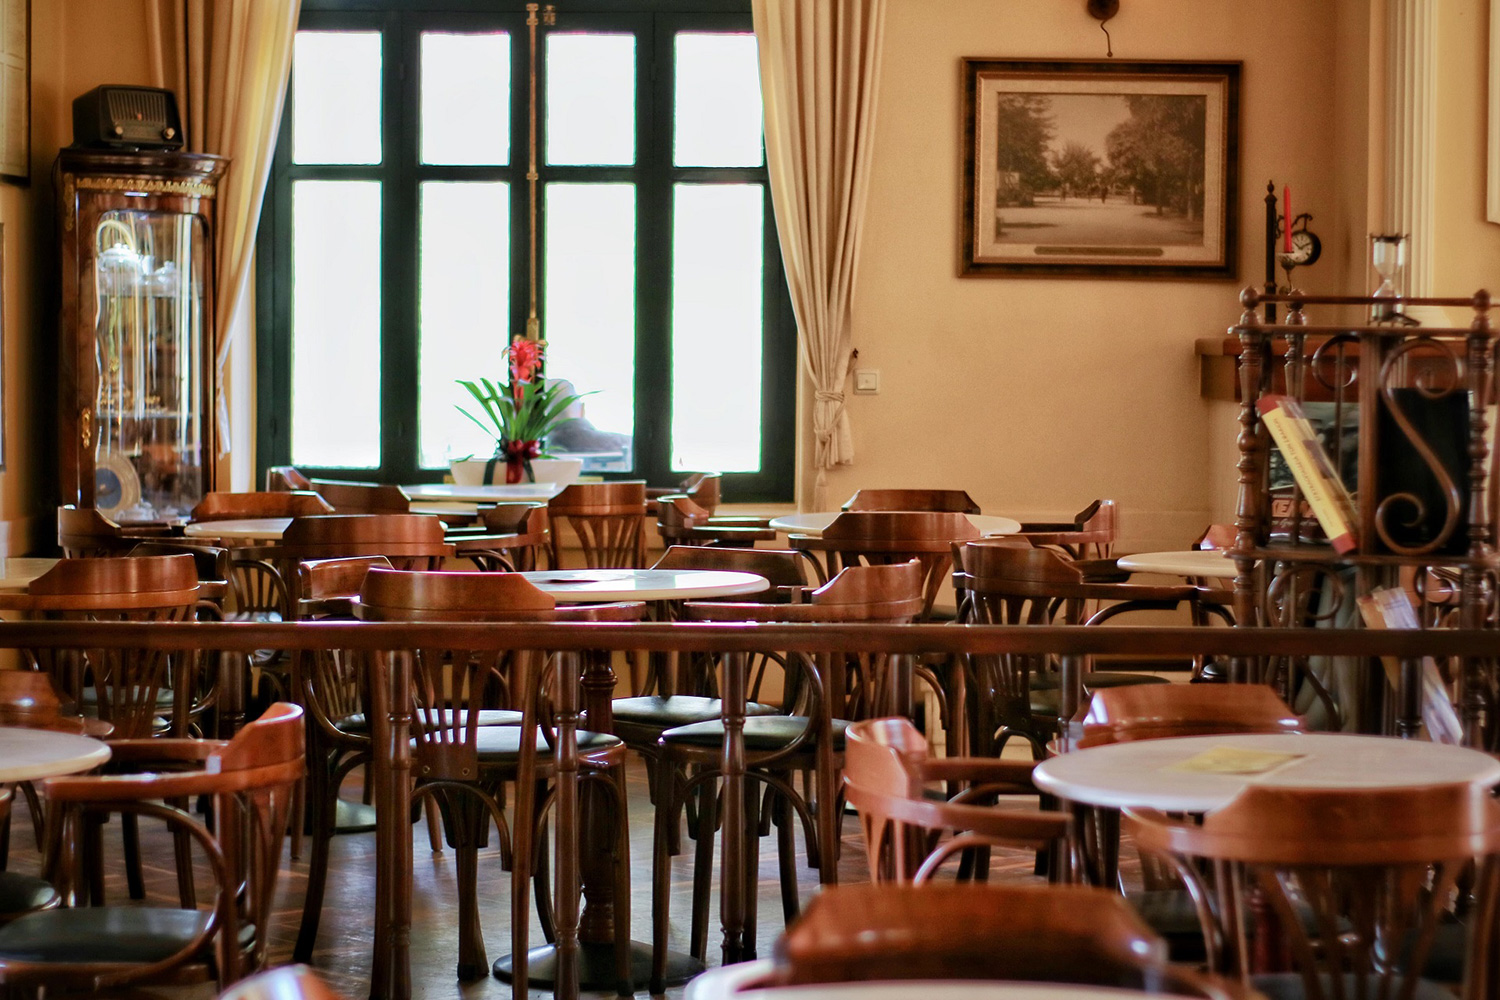 Chairs inside the cafeteria